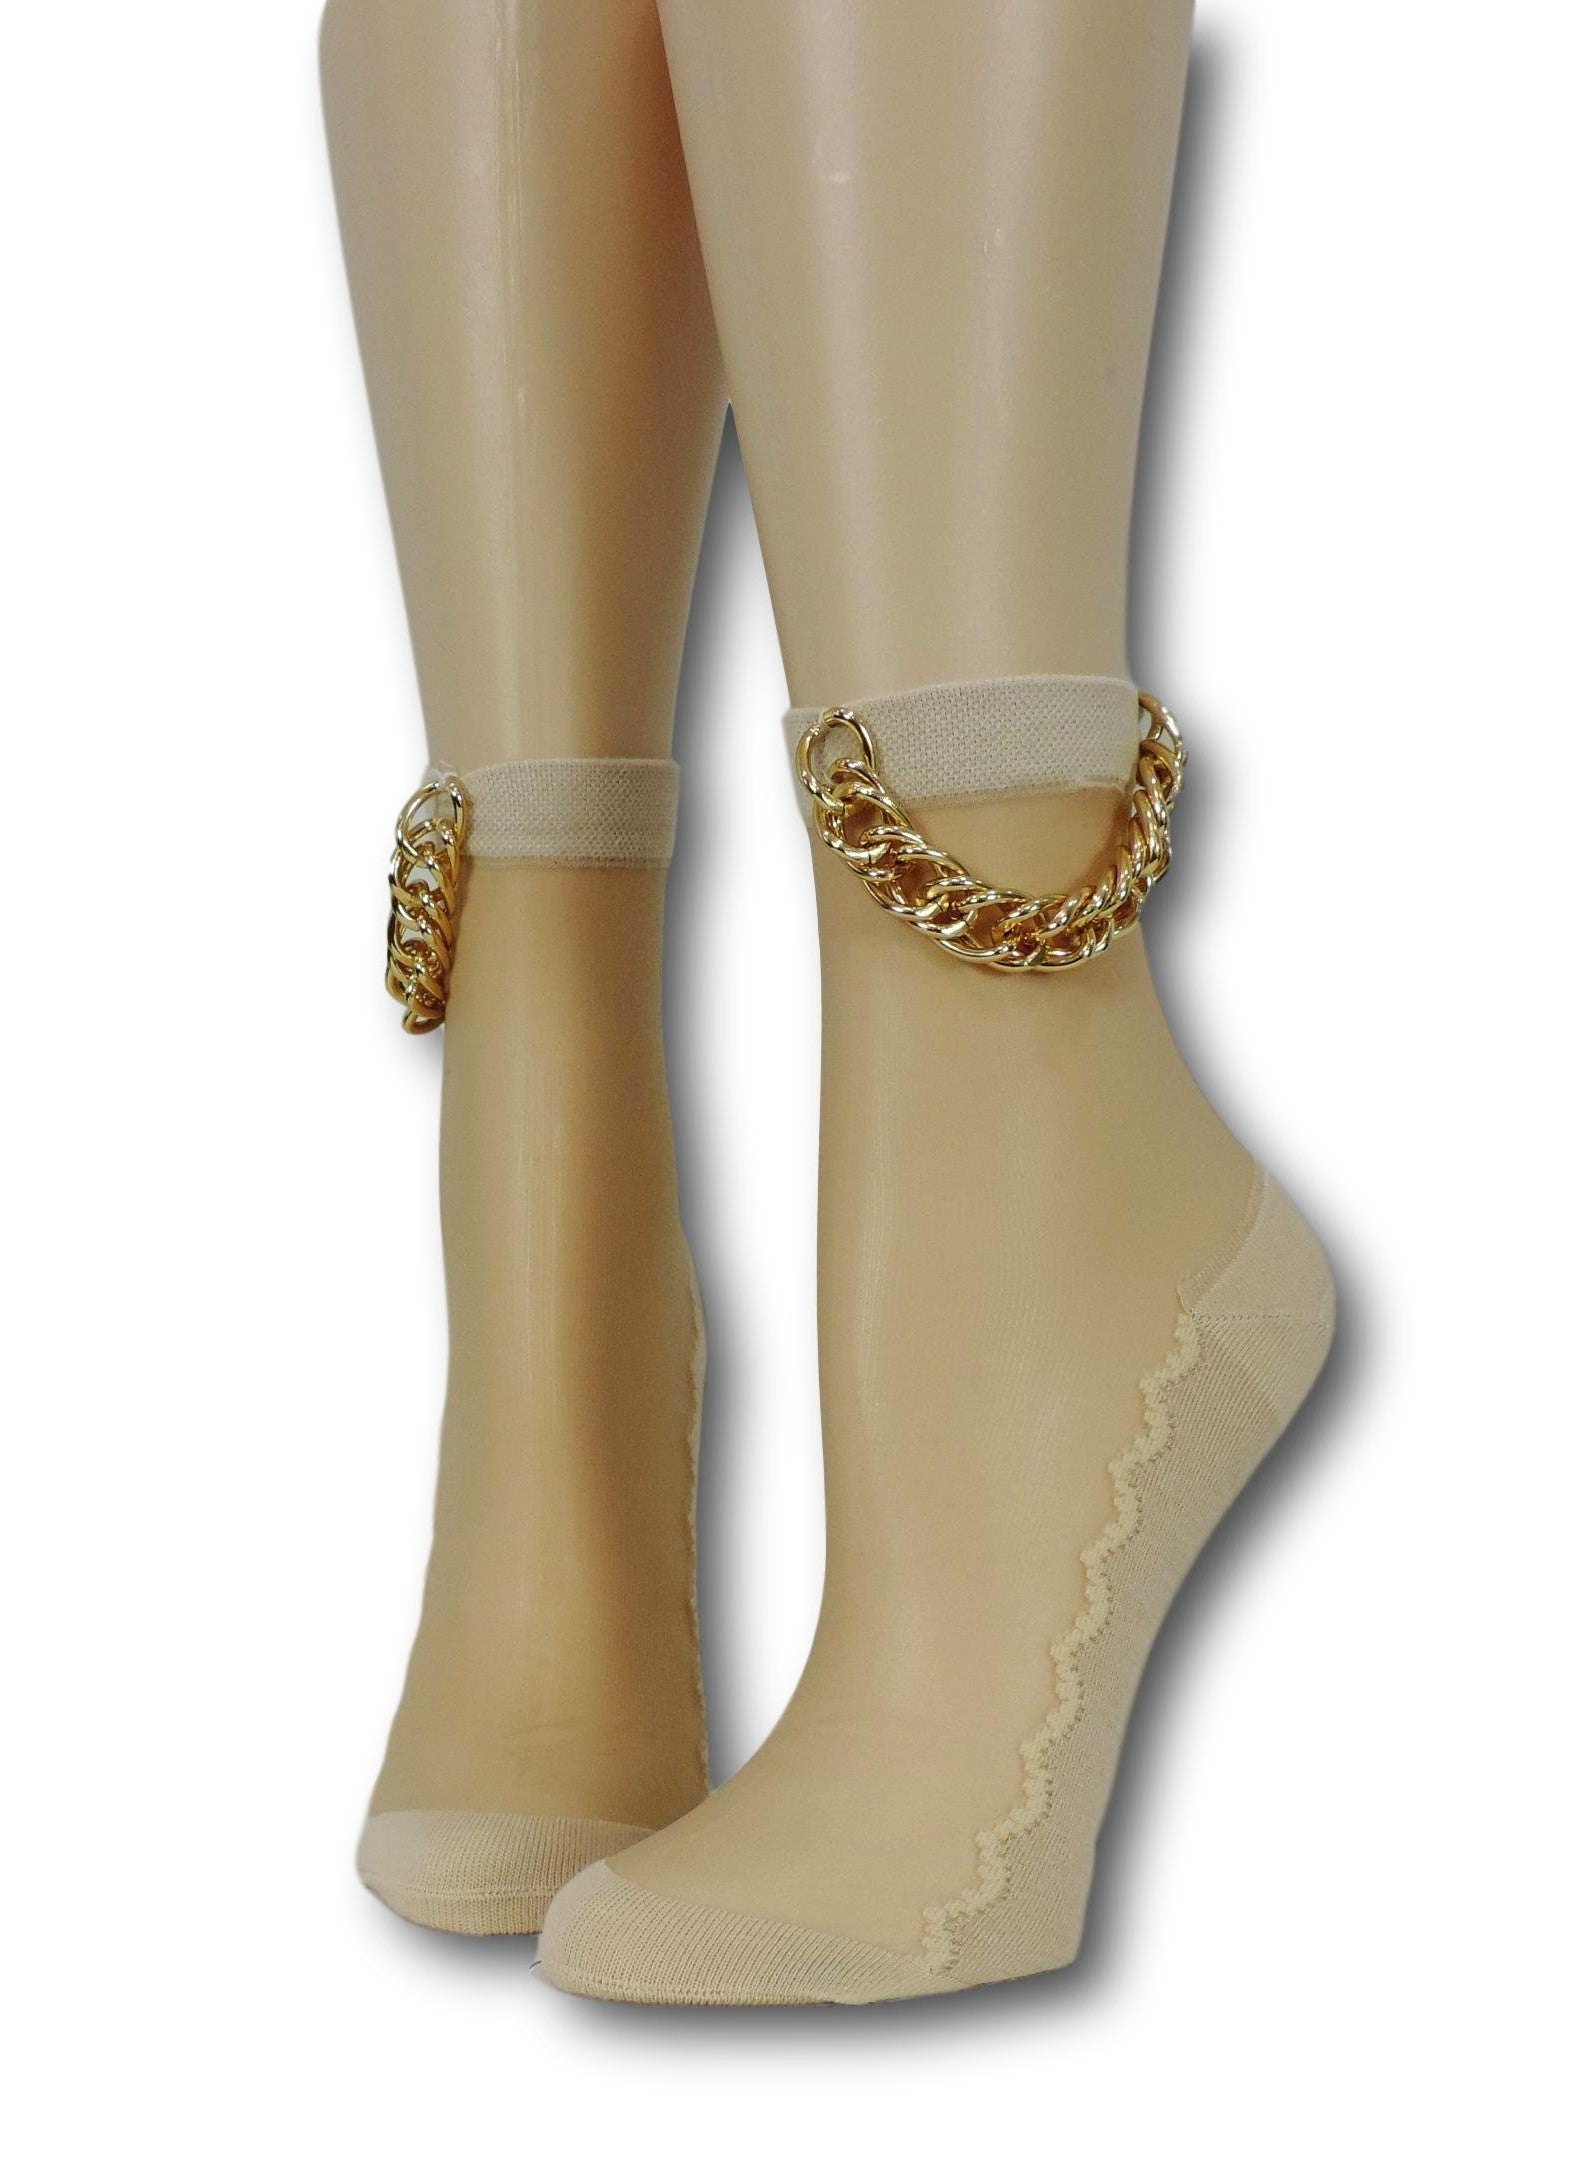 Beige Hip Hop Socks with Chain - Global Trendz Fashion®